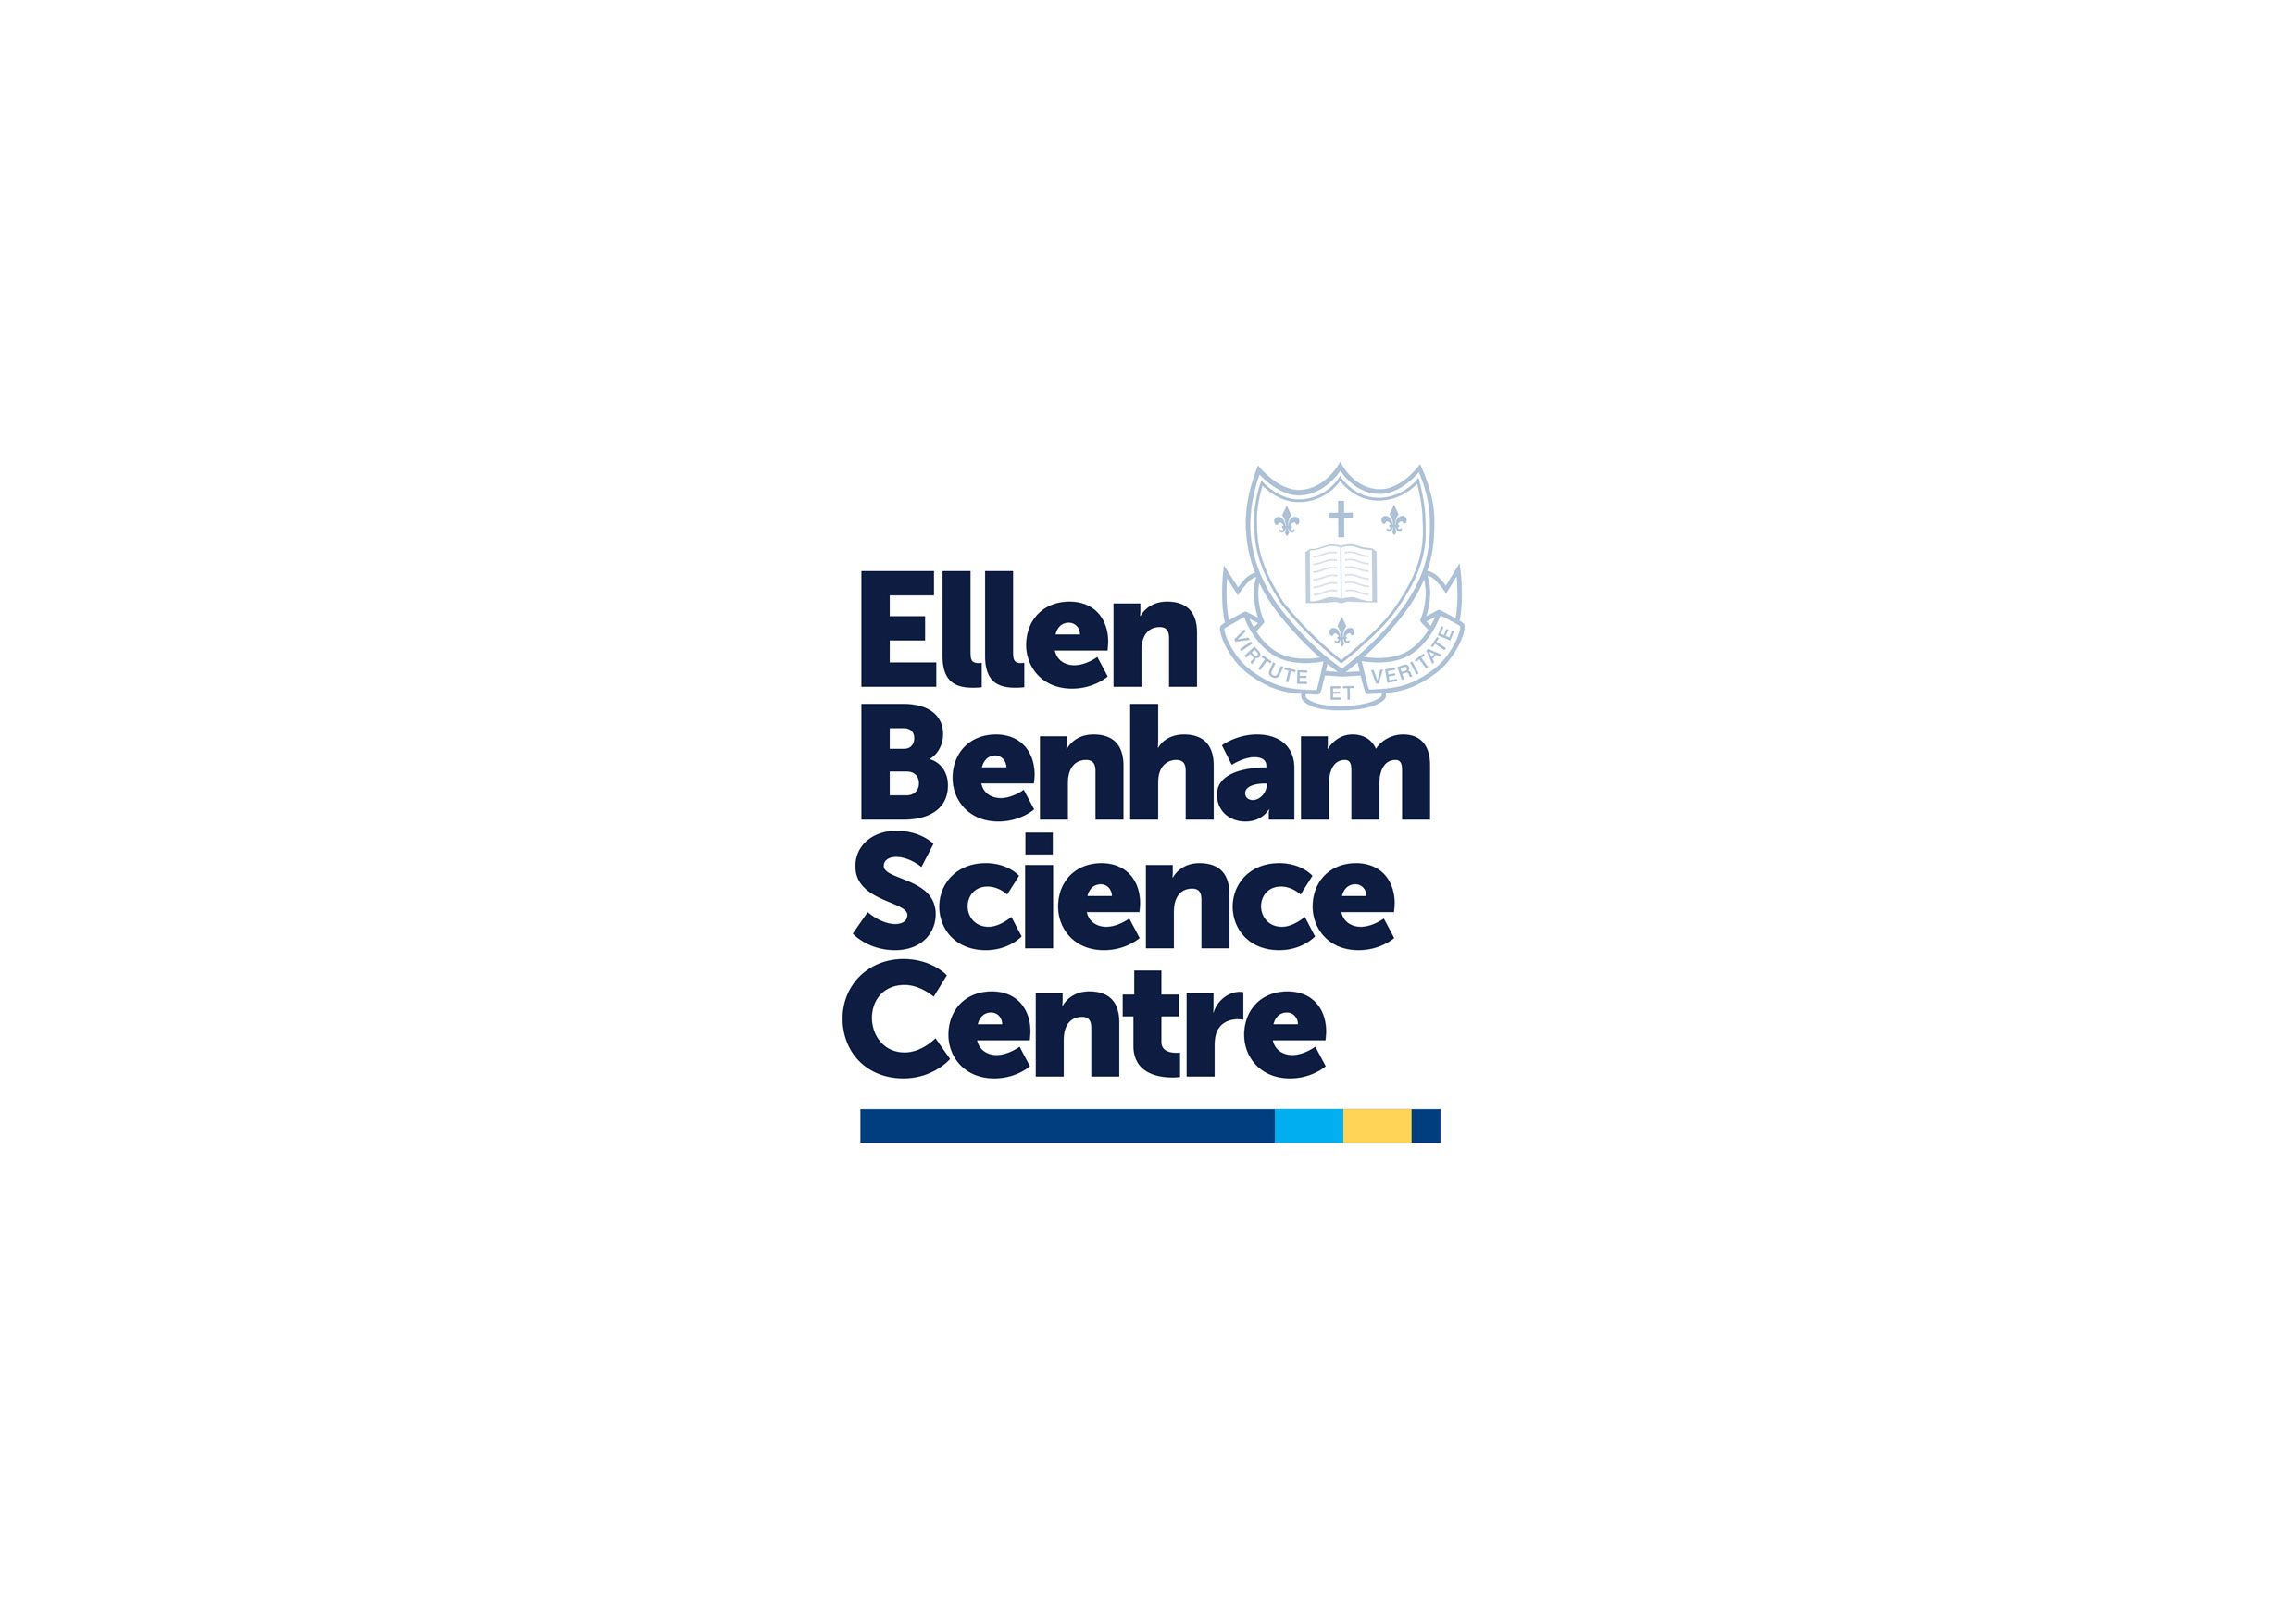 ELLEN-BENHAM_SCIENCE-CENTRE